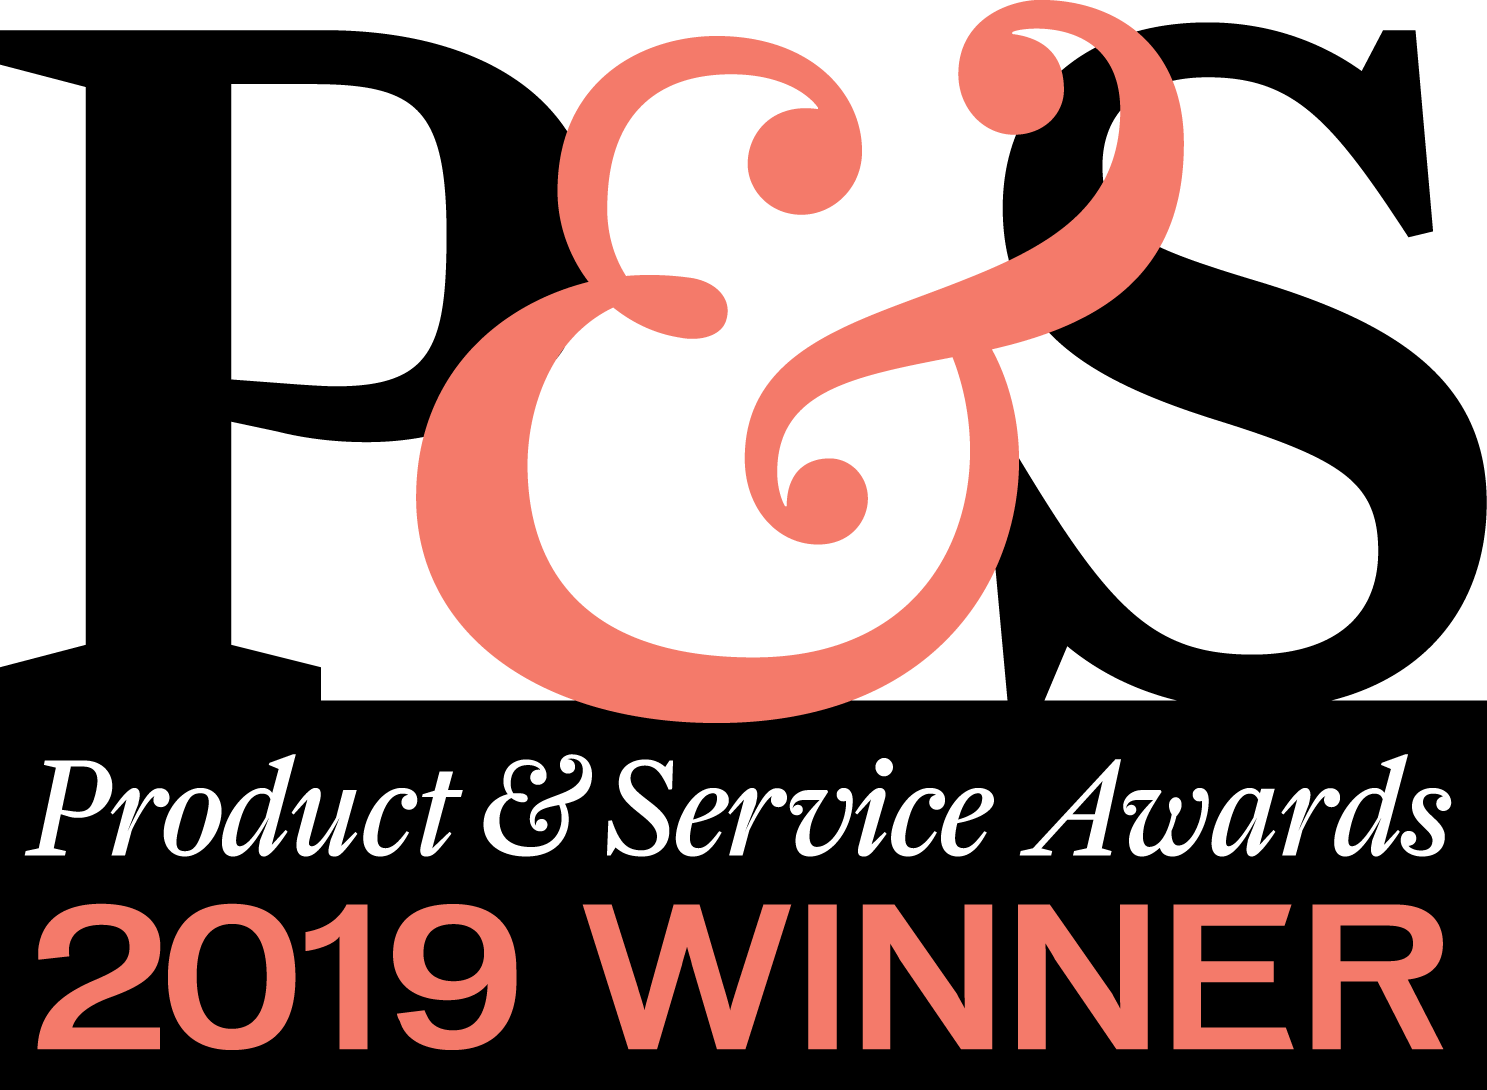 Product & Services Awards 2019